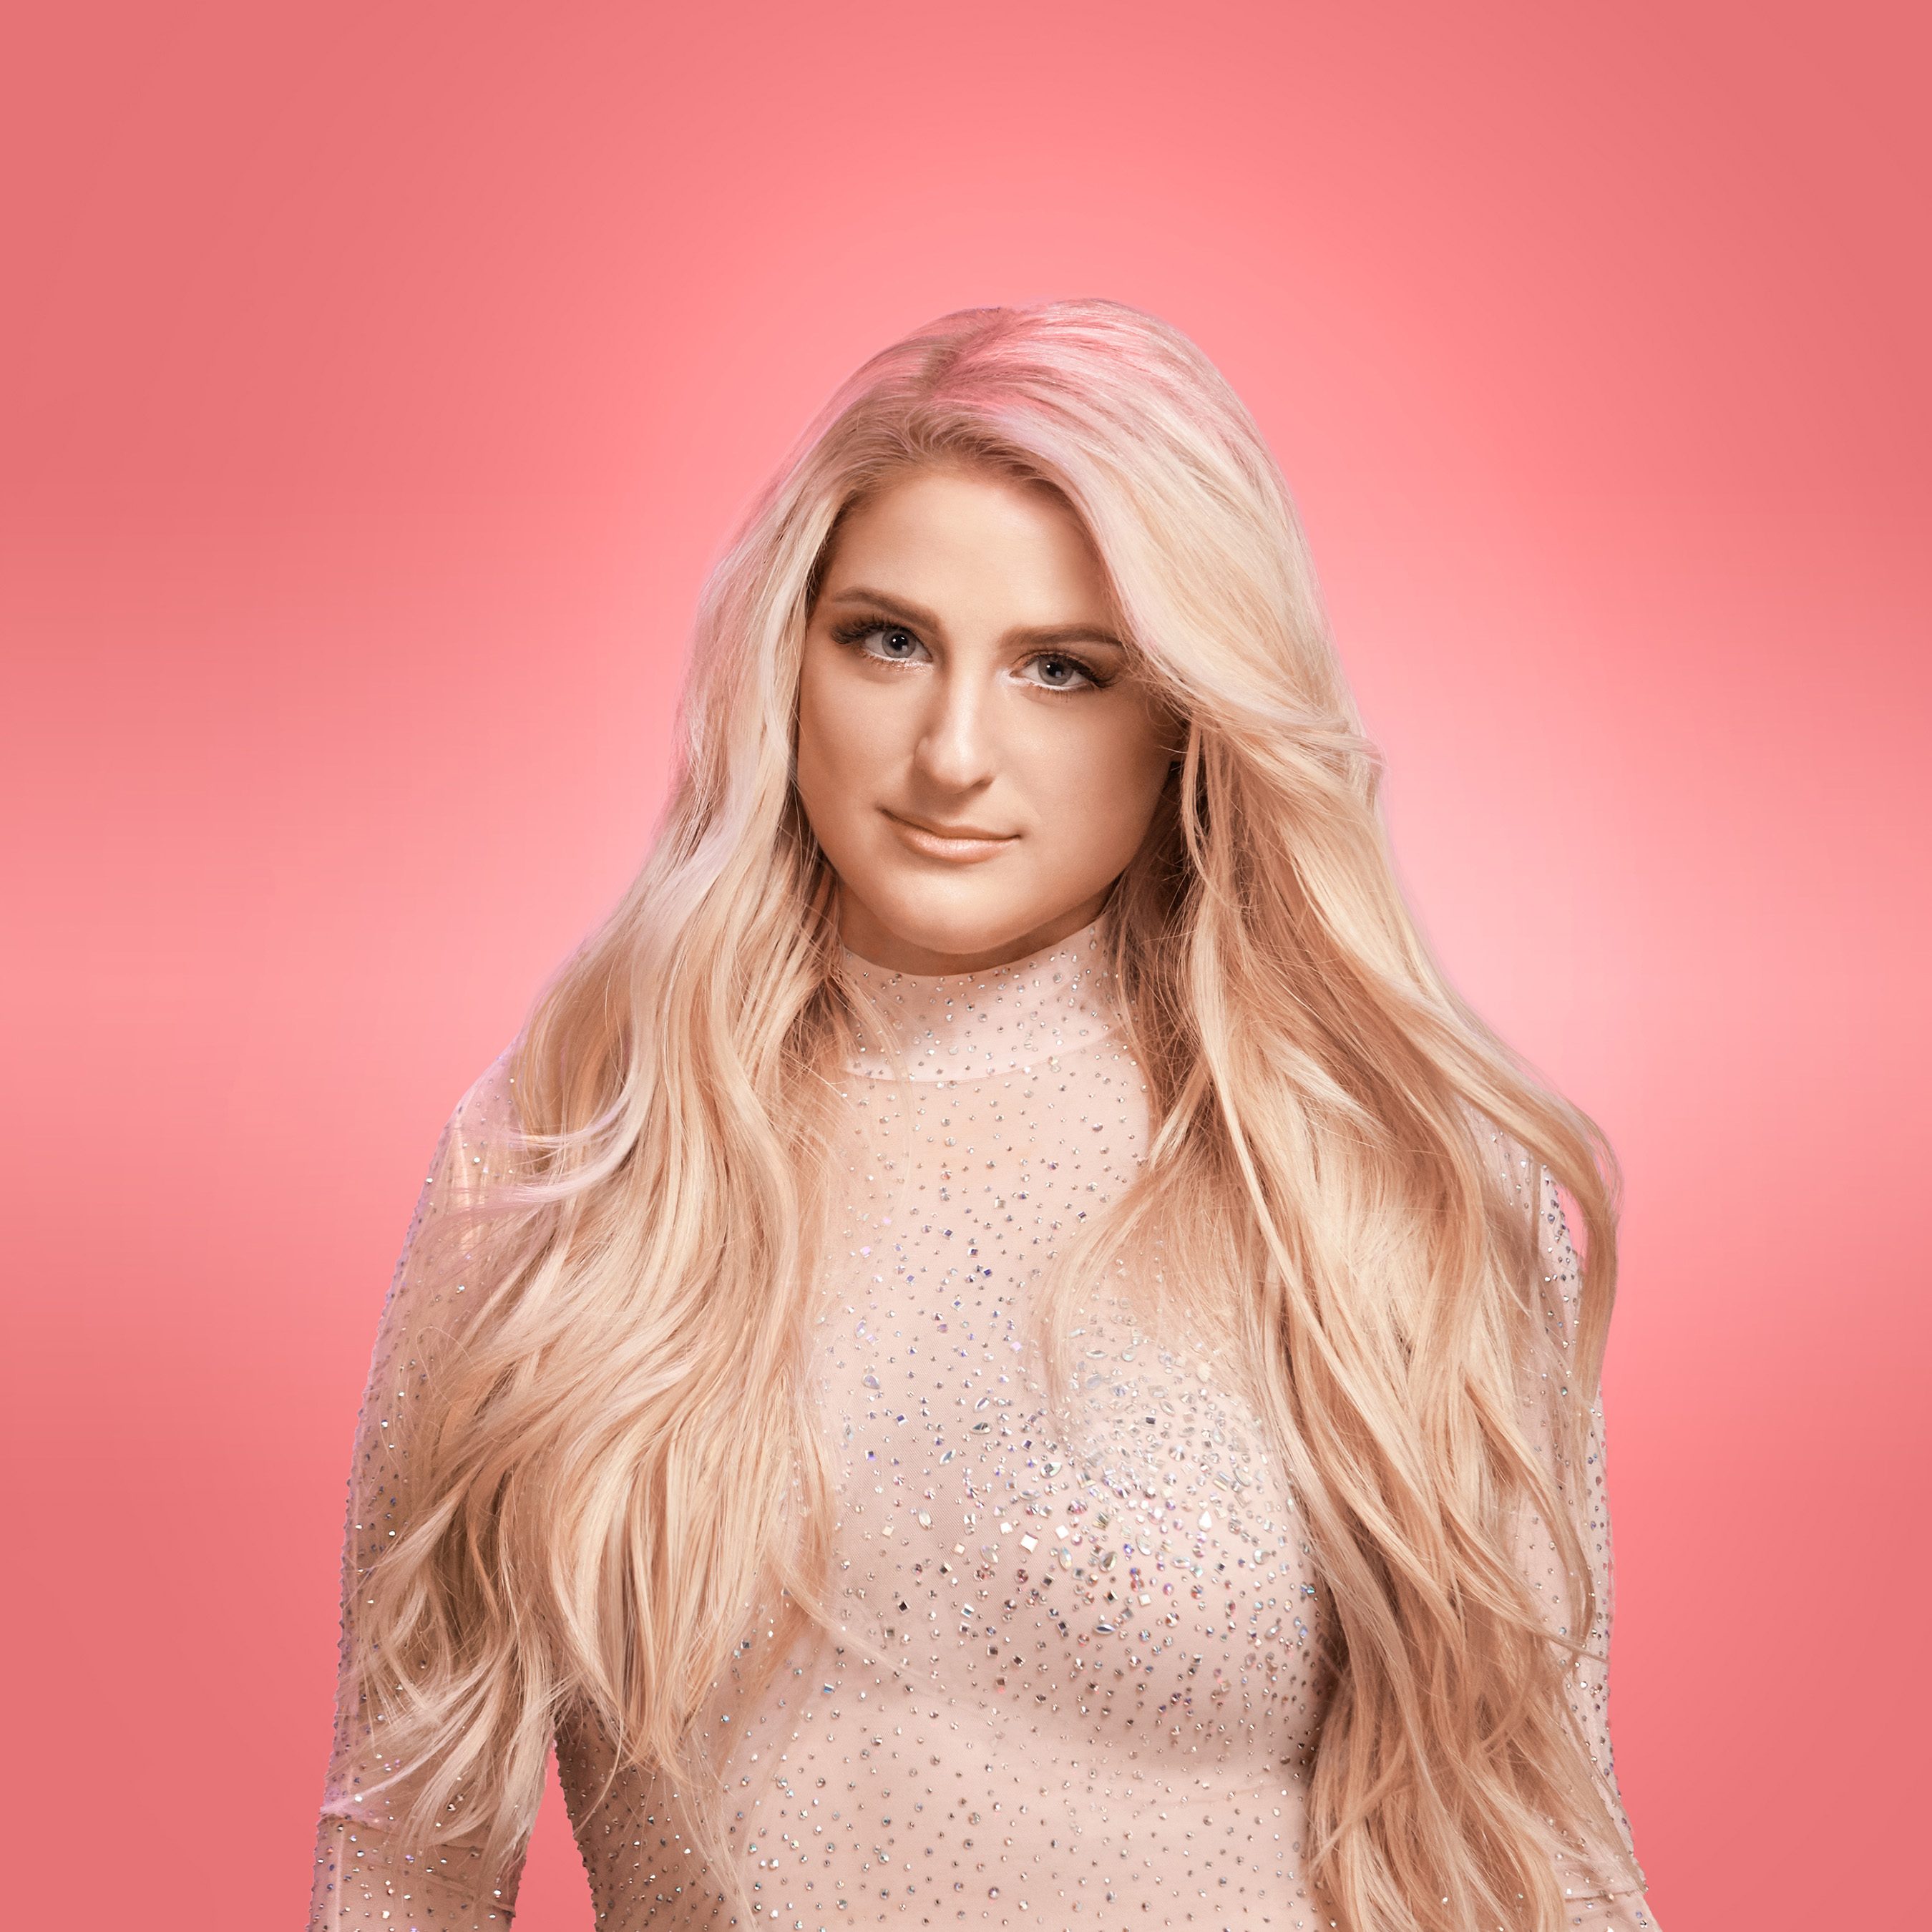 Meghan Trainor Kicks Off 128th Red Kettle Campaign